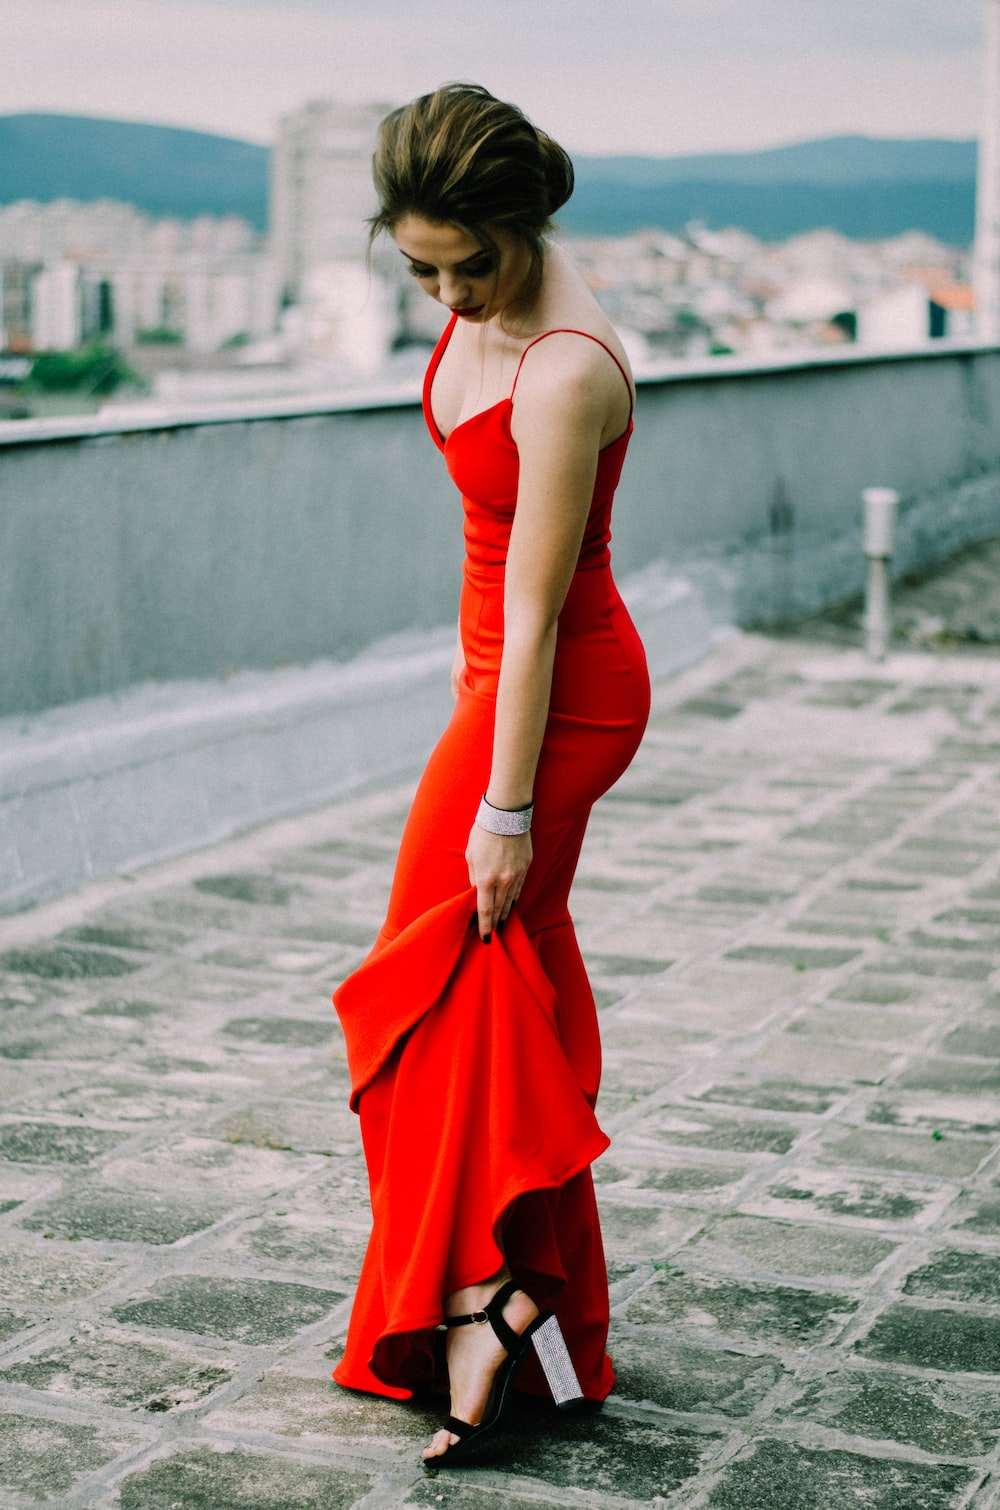 woman wearing red spaghetti strap dress